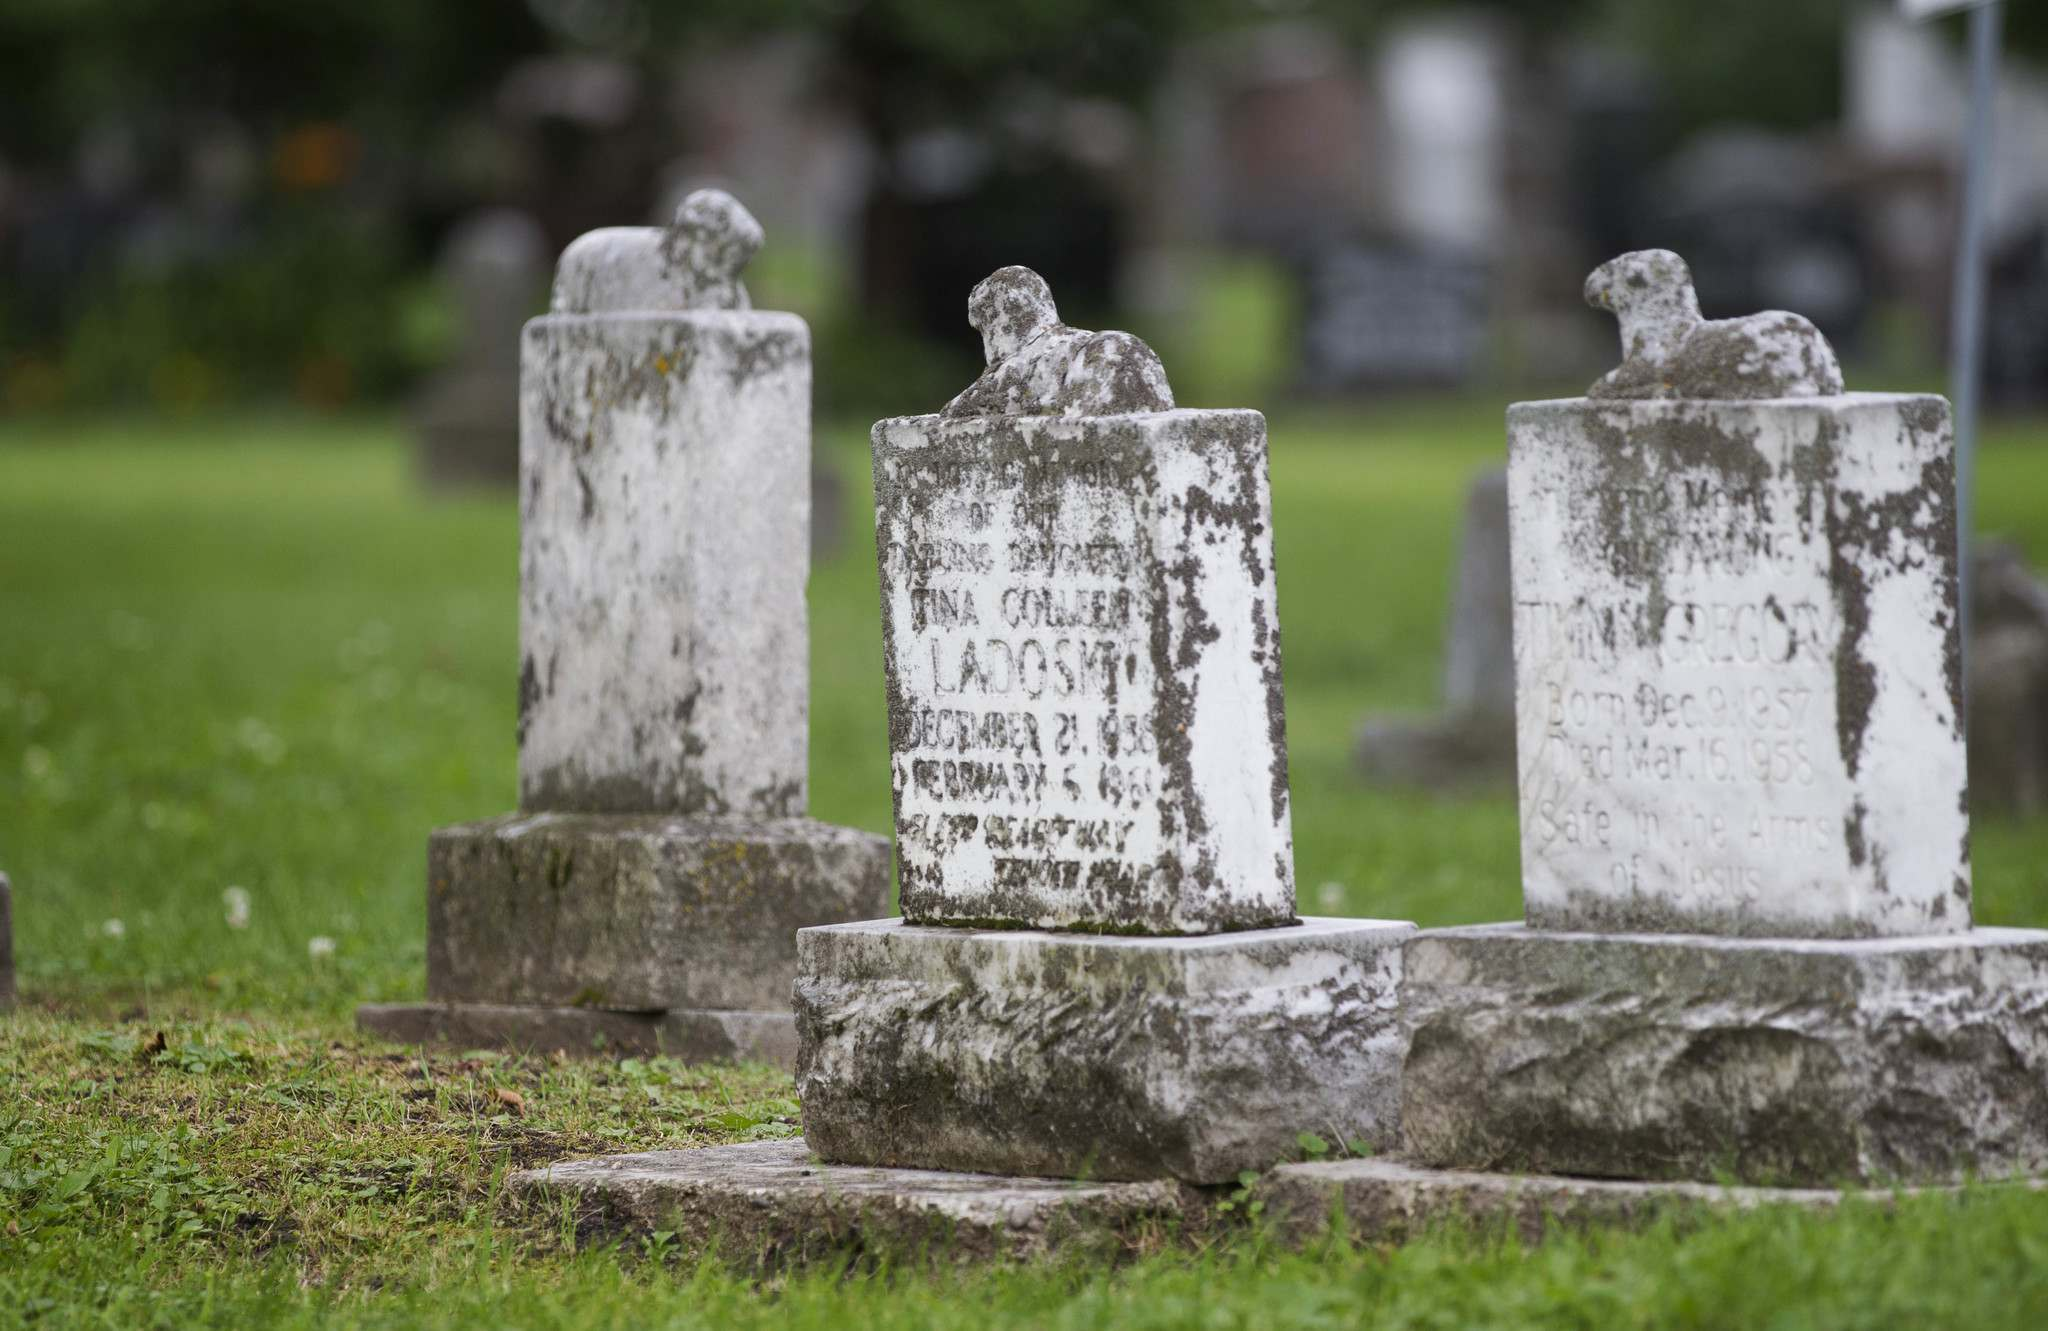 Many children are buried in this cemetery, some with lambs on their headstones.</p></p>